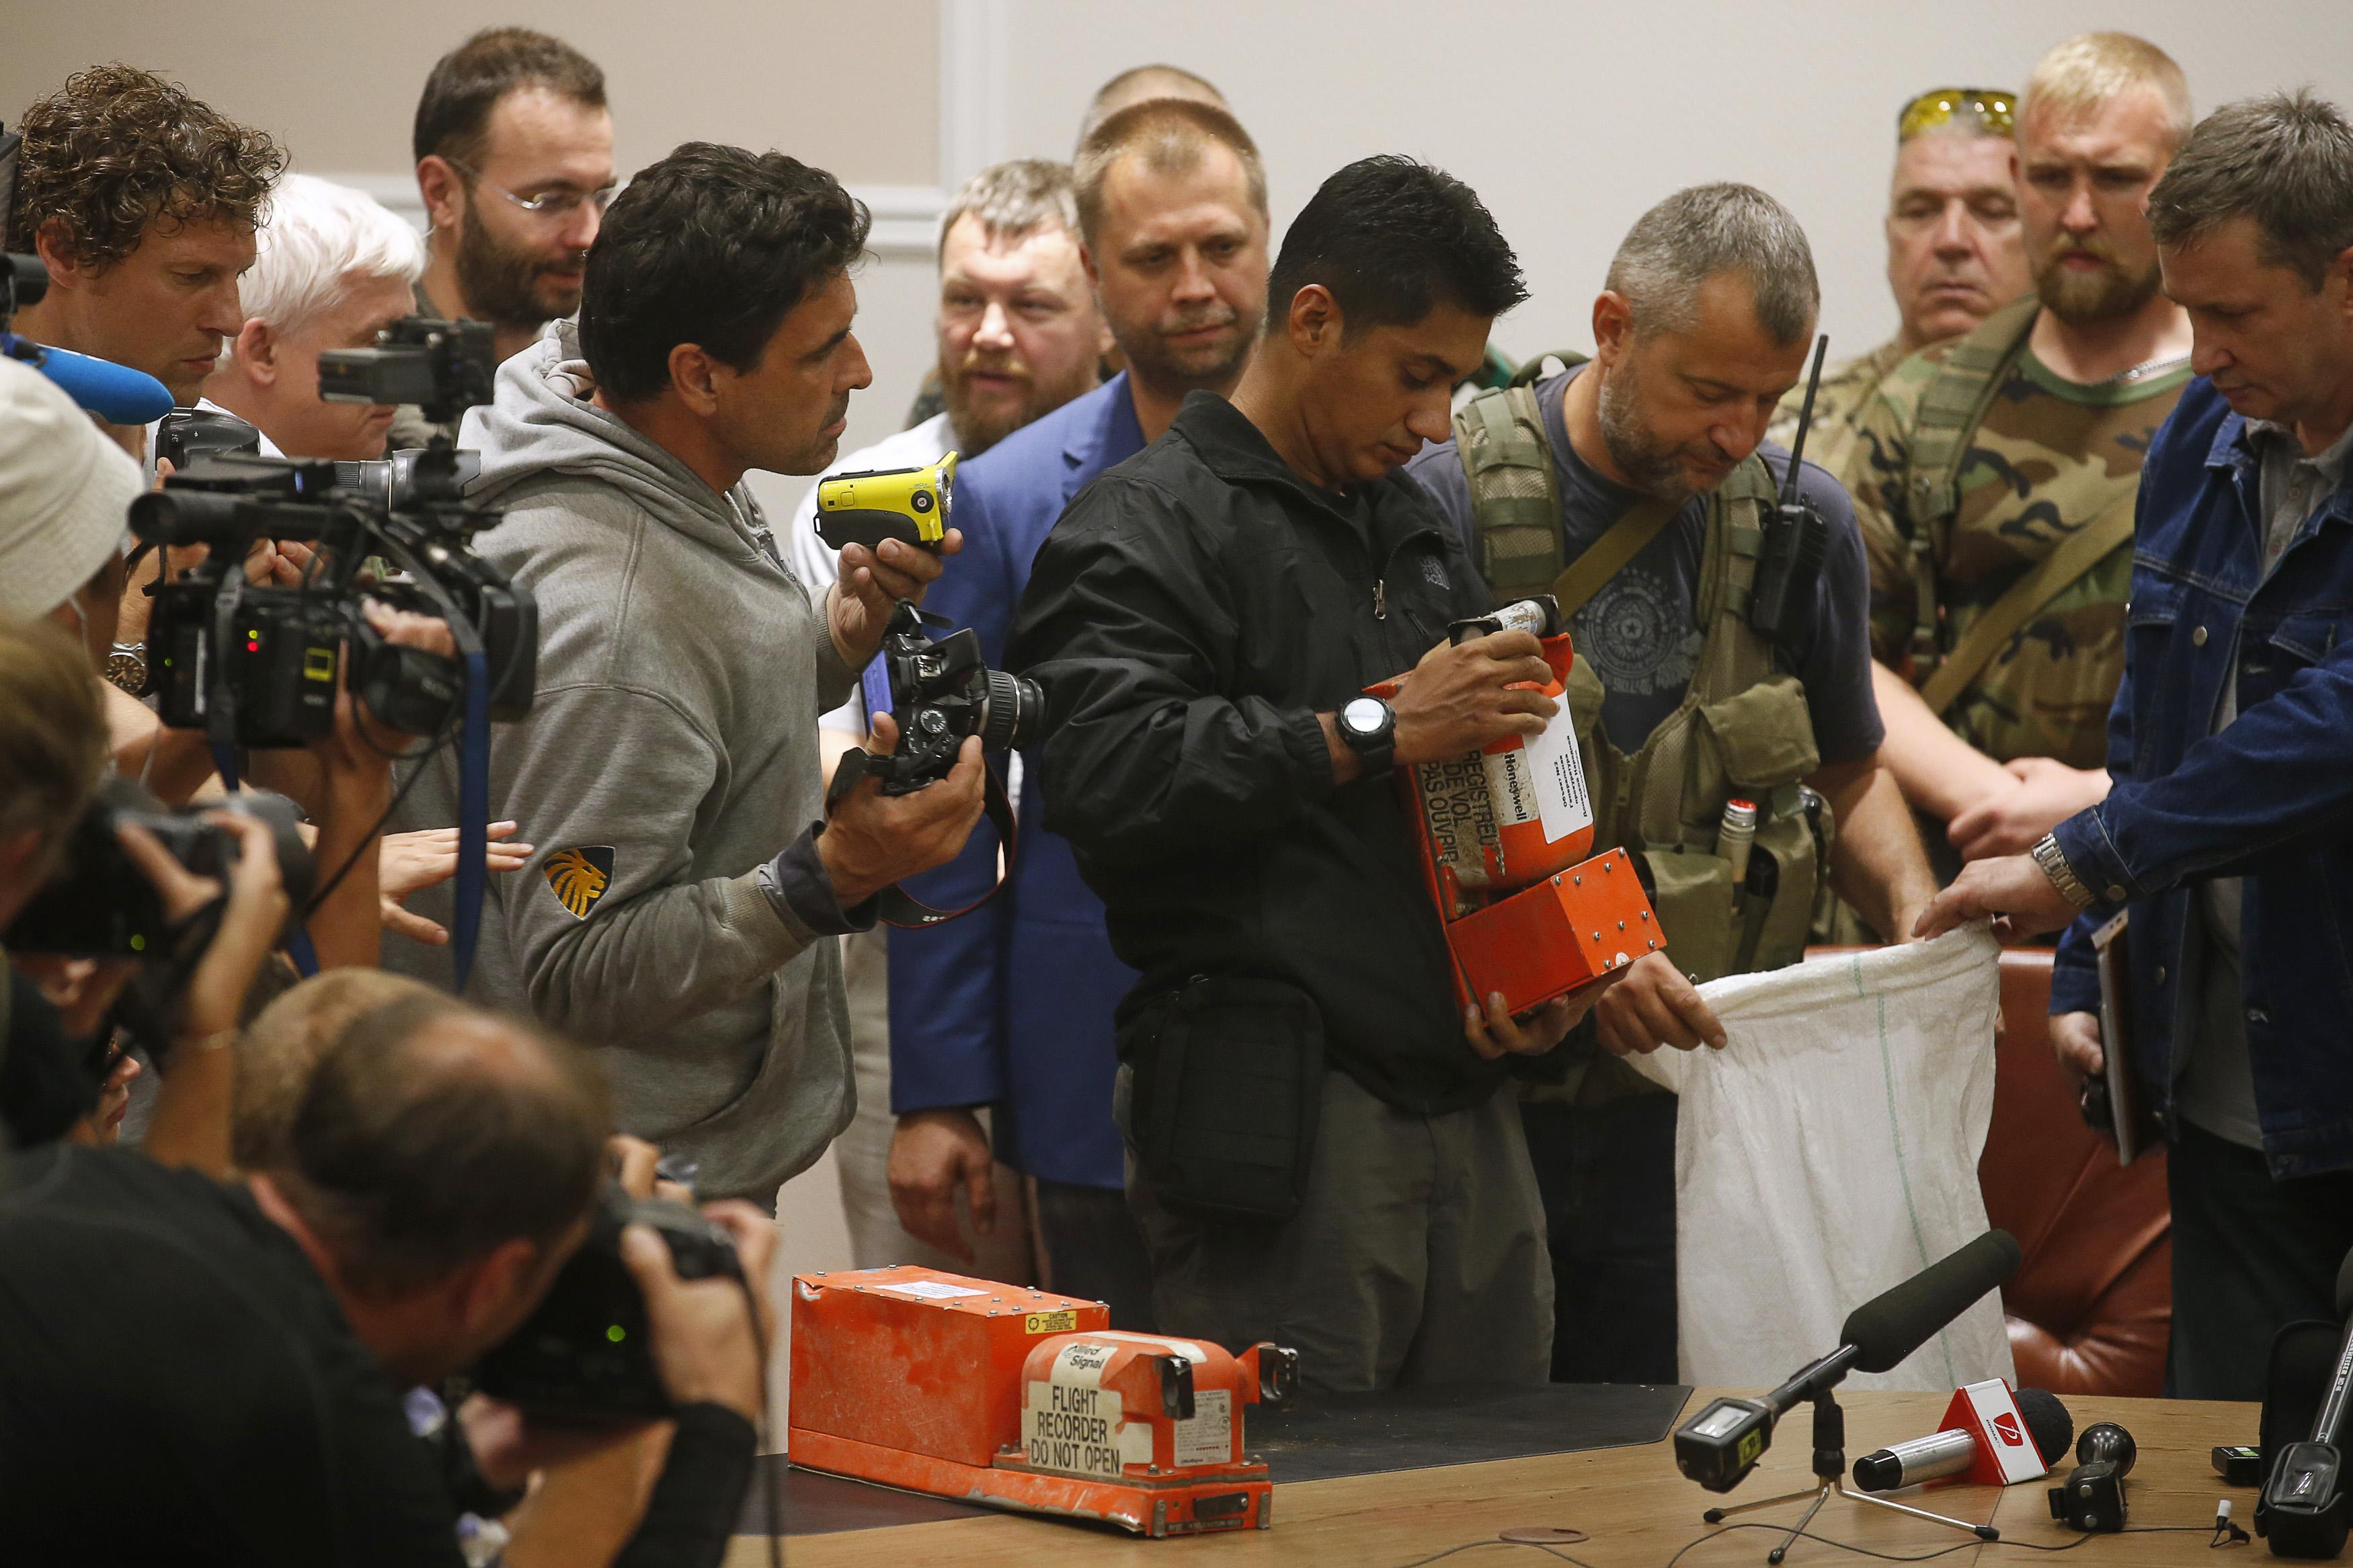 MH17 Black Boxes